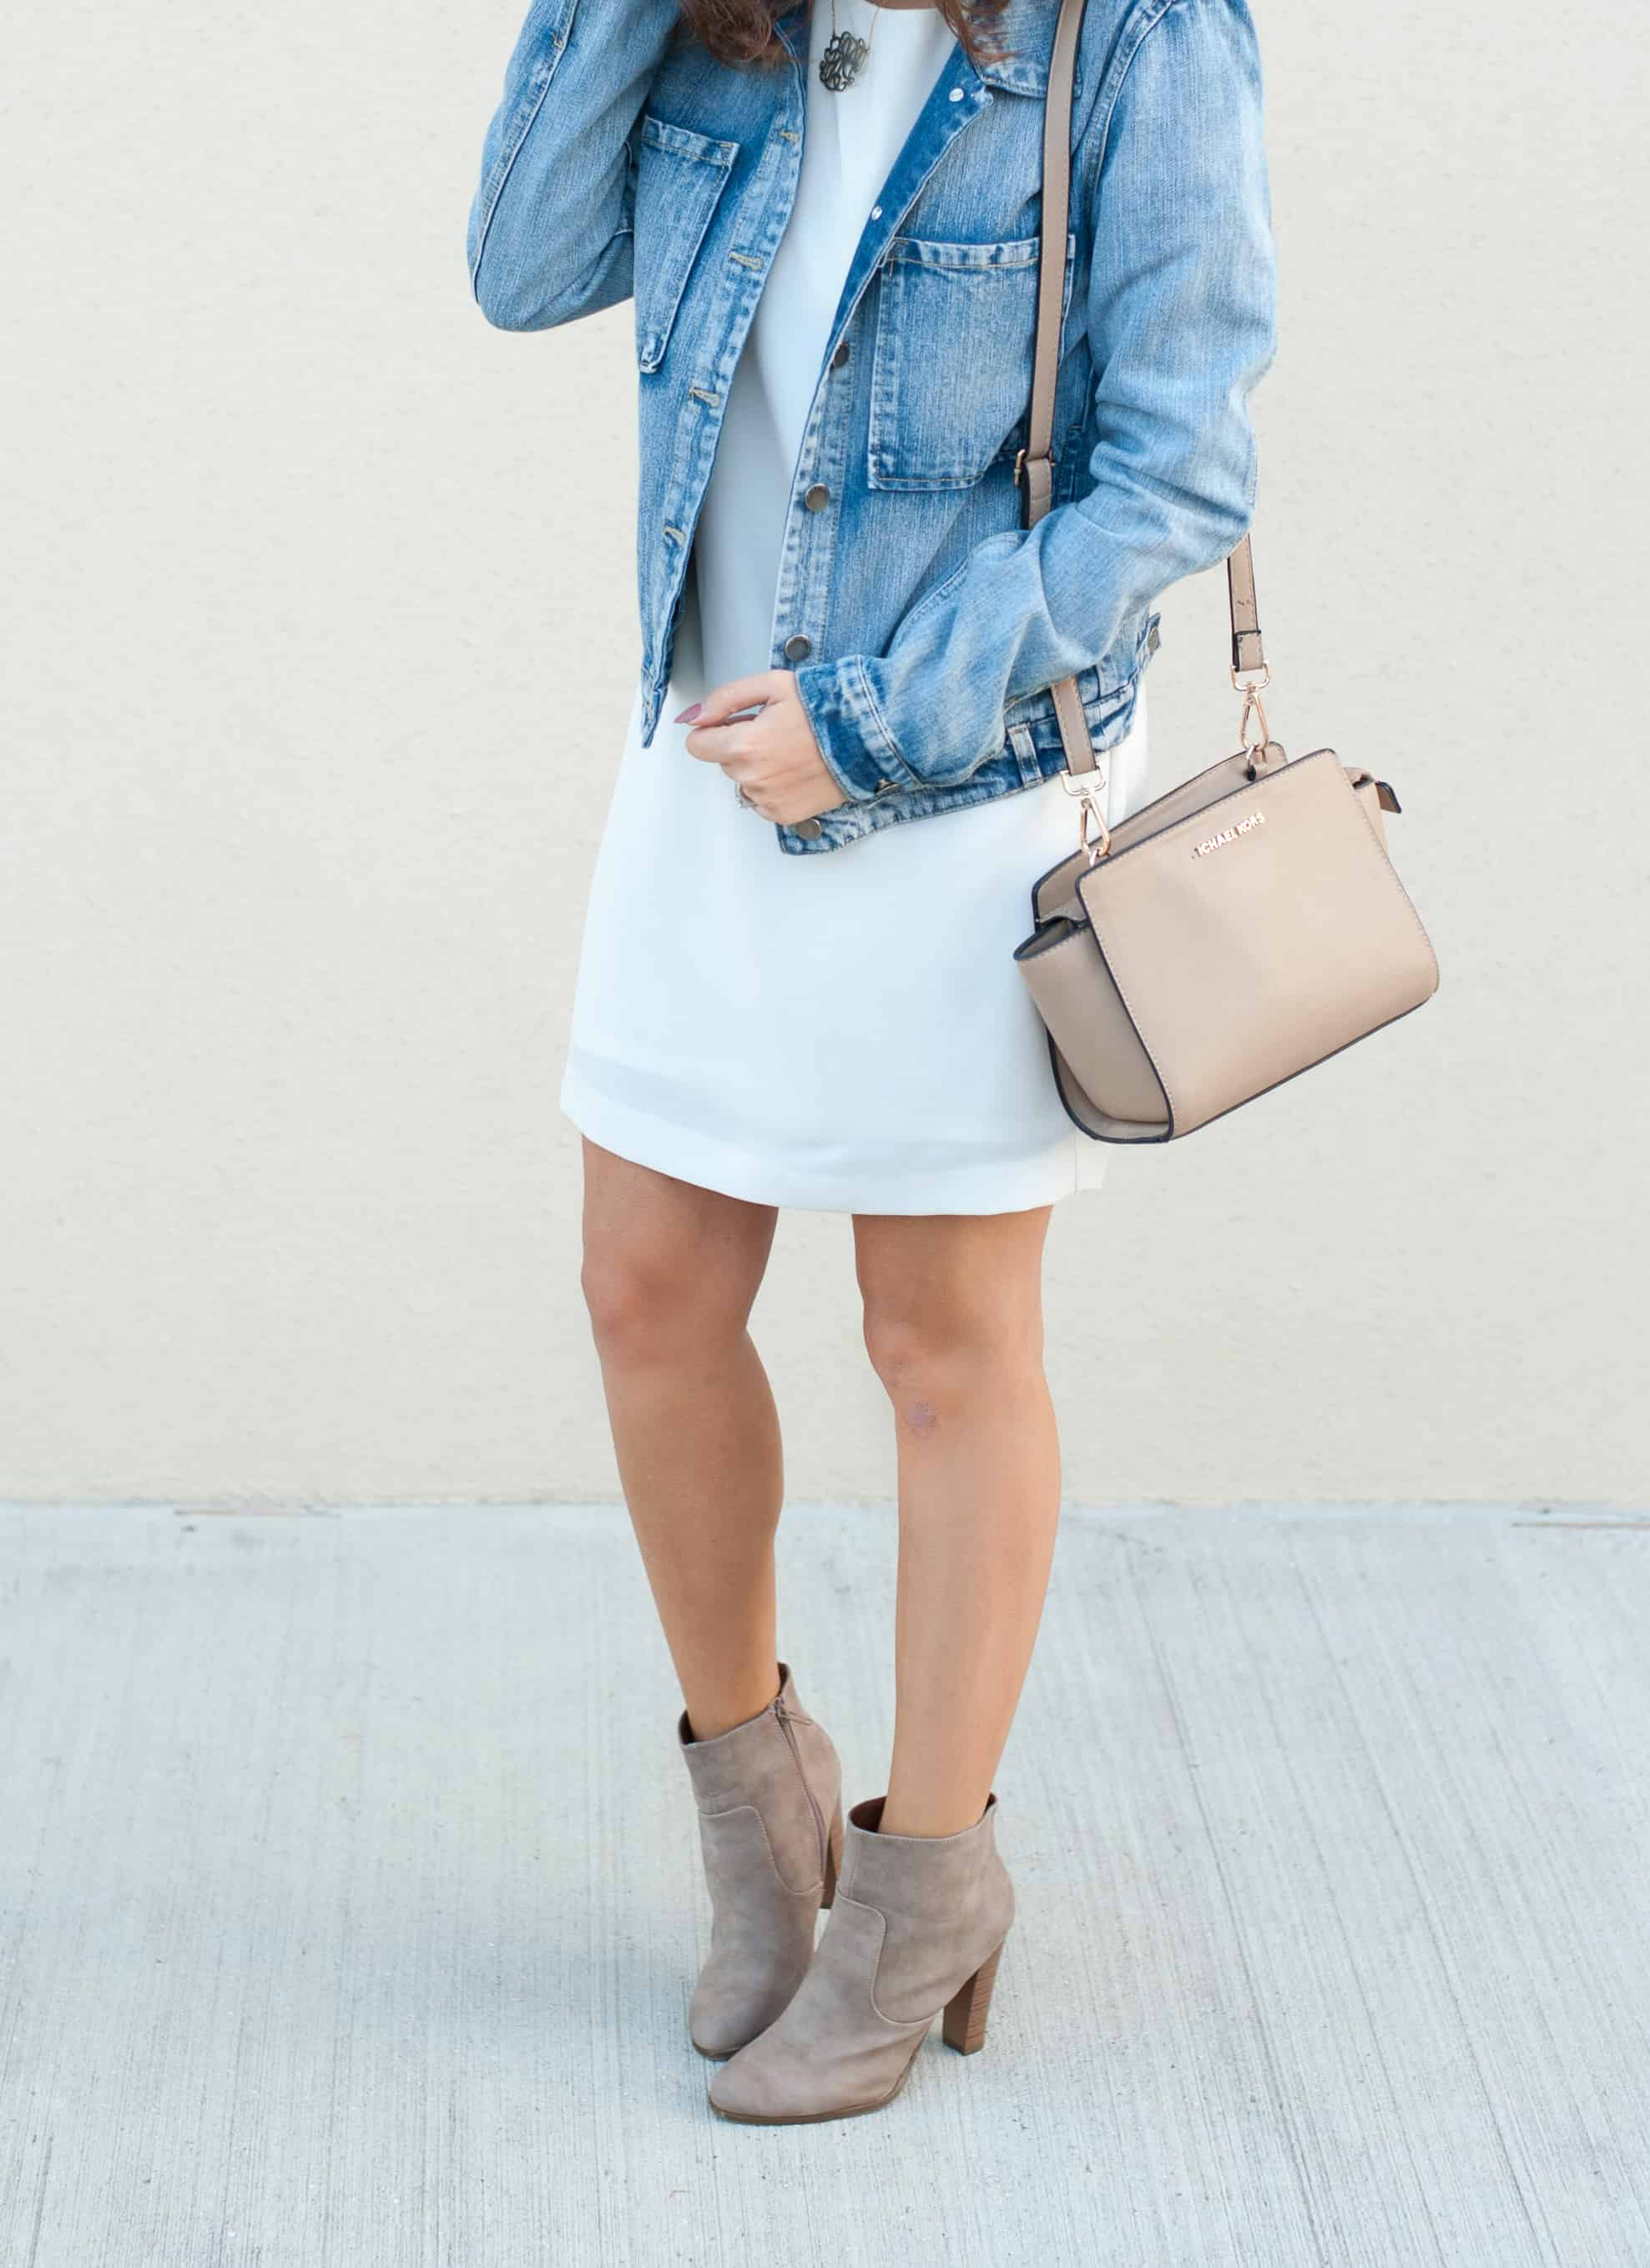 dress_up_buttercup_dede_raad_houston_fashion_style_blog (1 of 9)